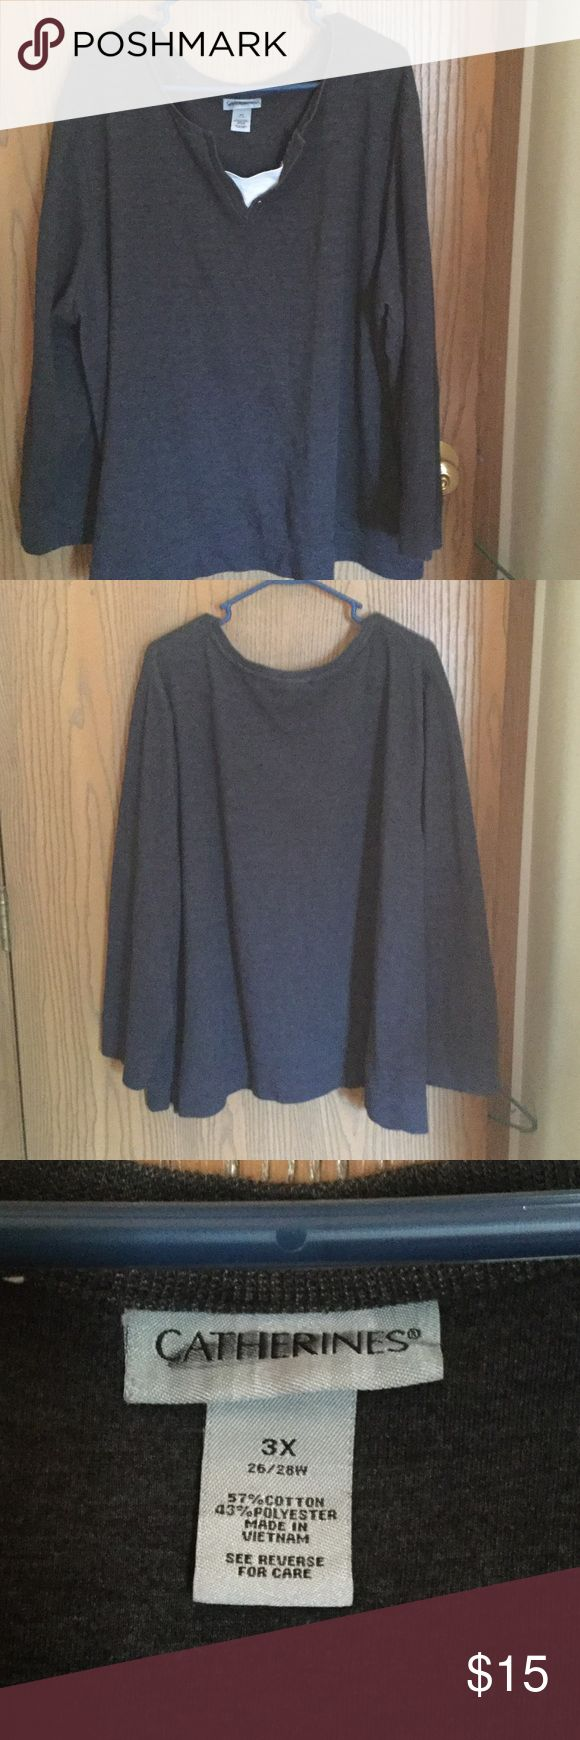 Plus Size Pullover Sweatshirt Wore once, gray sweatshirt, comfortable, soft! It looks great with jeans! Catherines Sweaters Crew & Scoop Necks